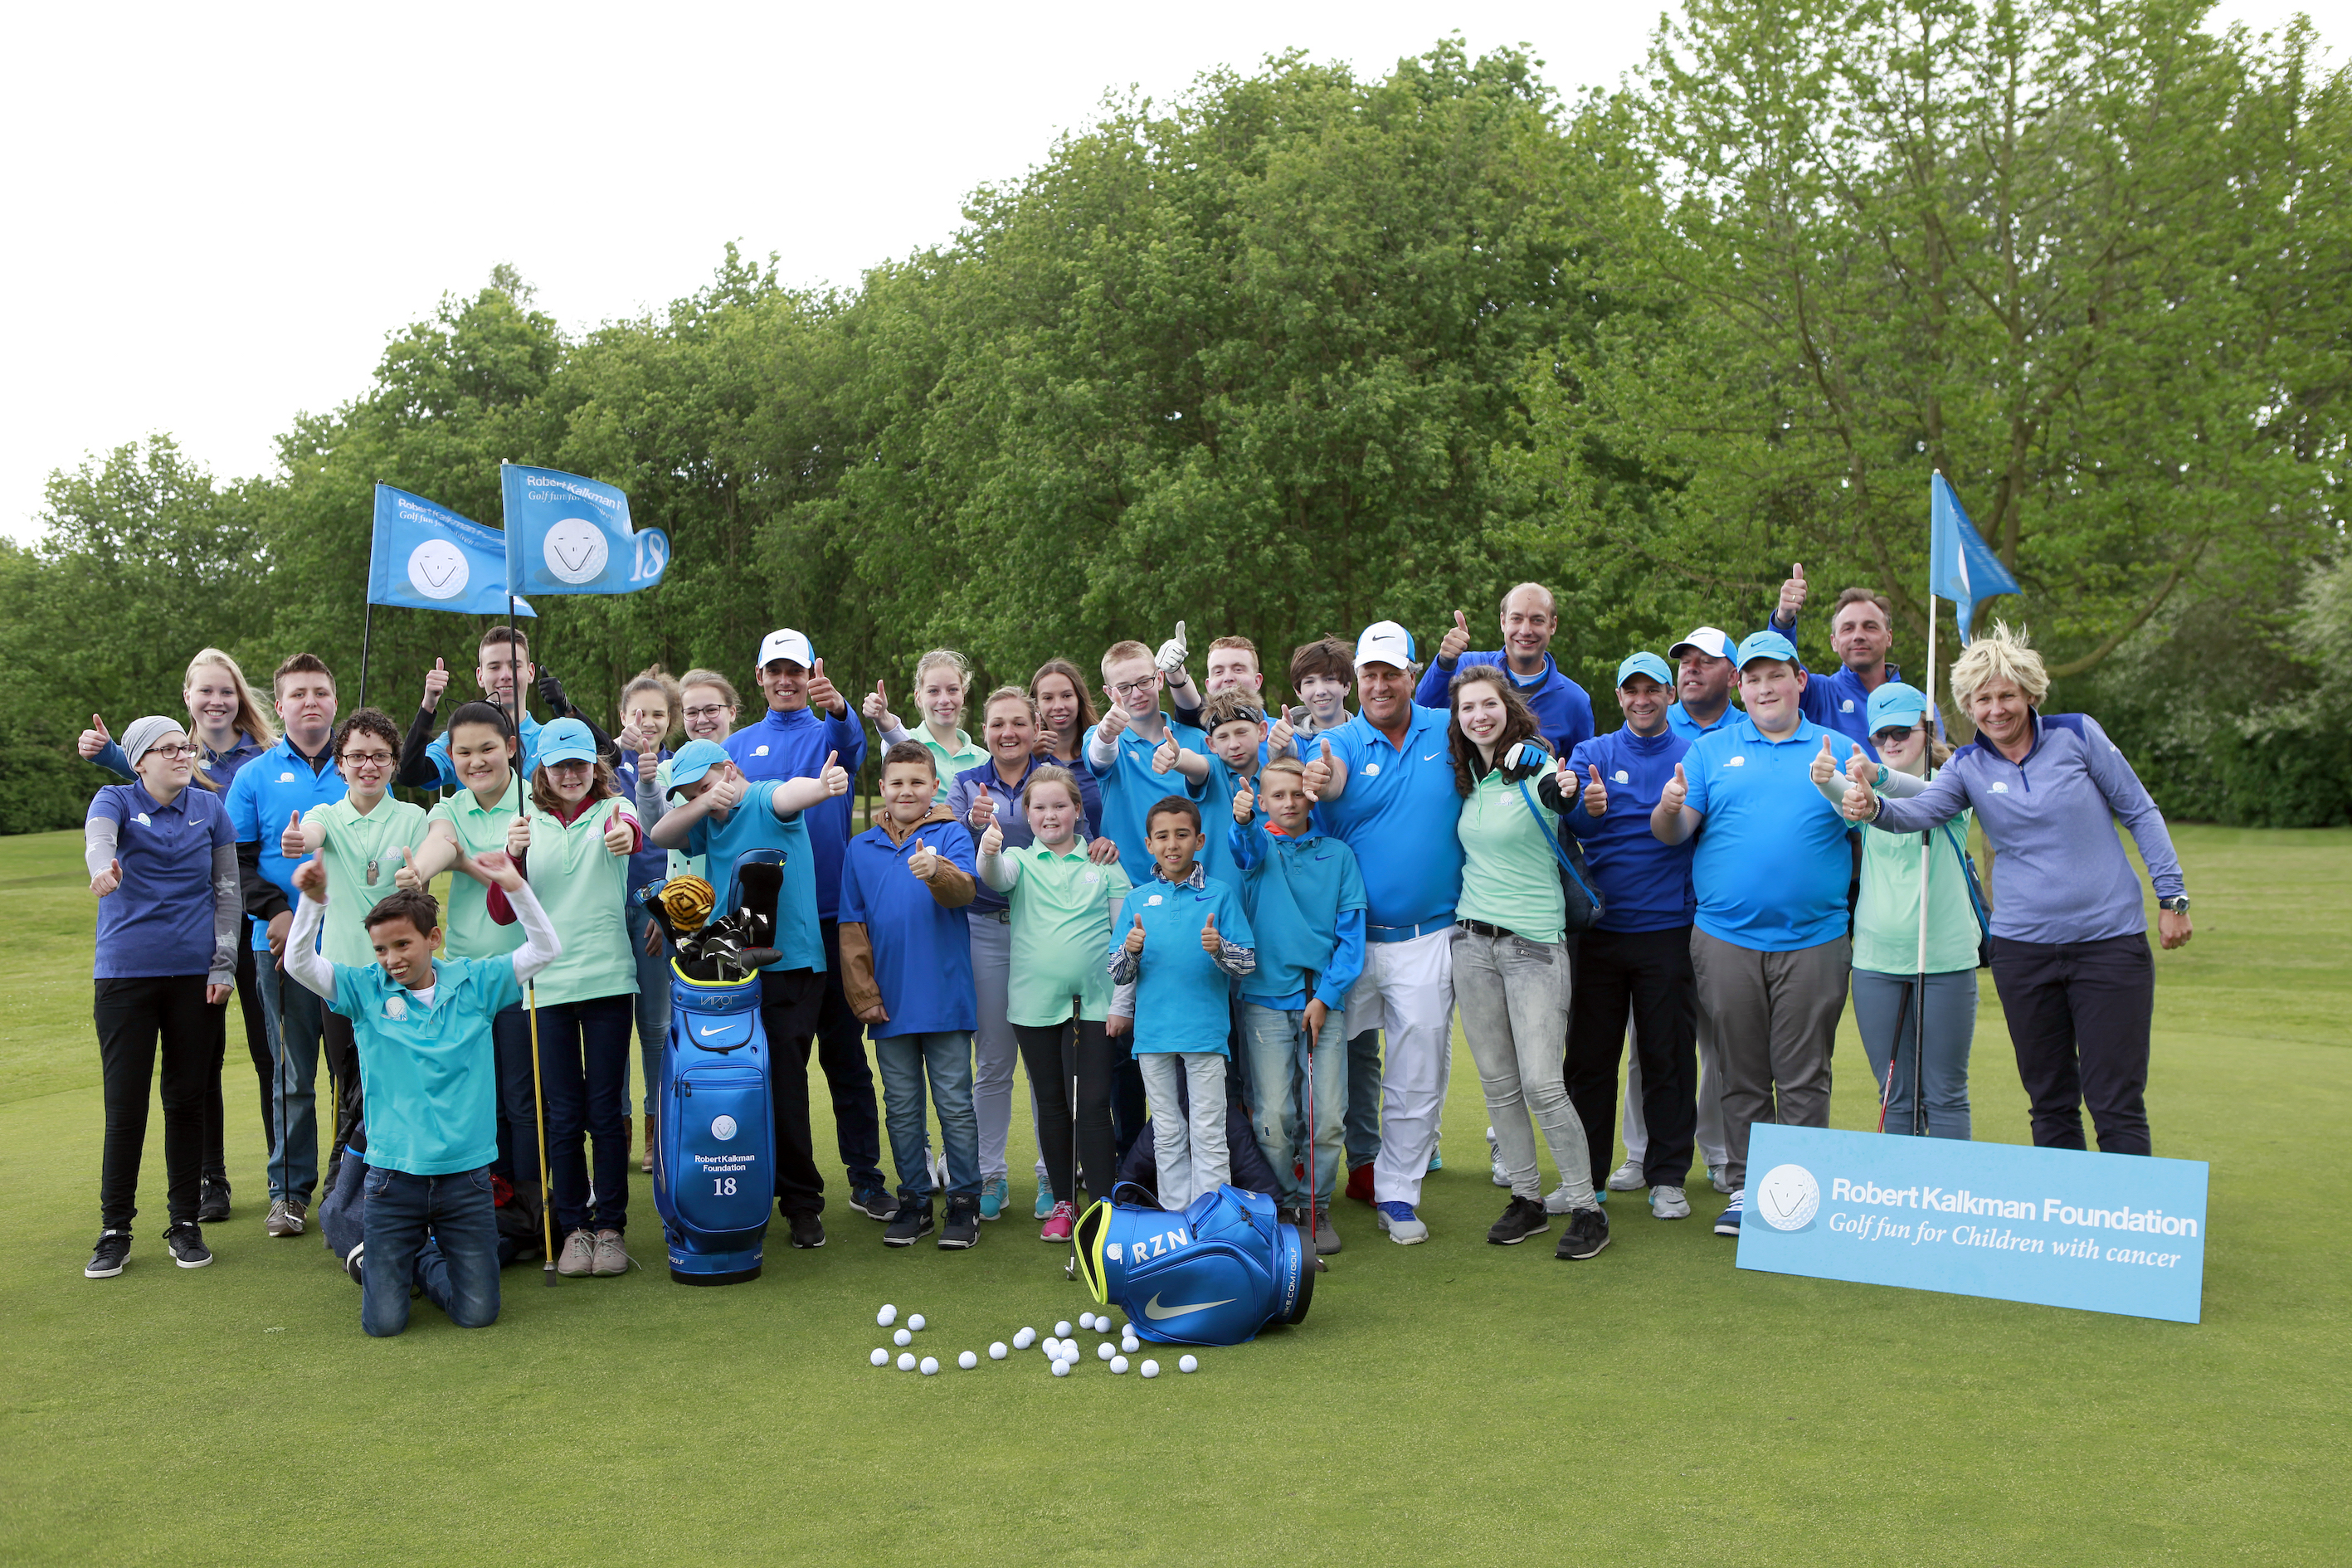 Golf Fun Clinic - Mei 2016